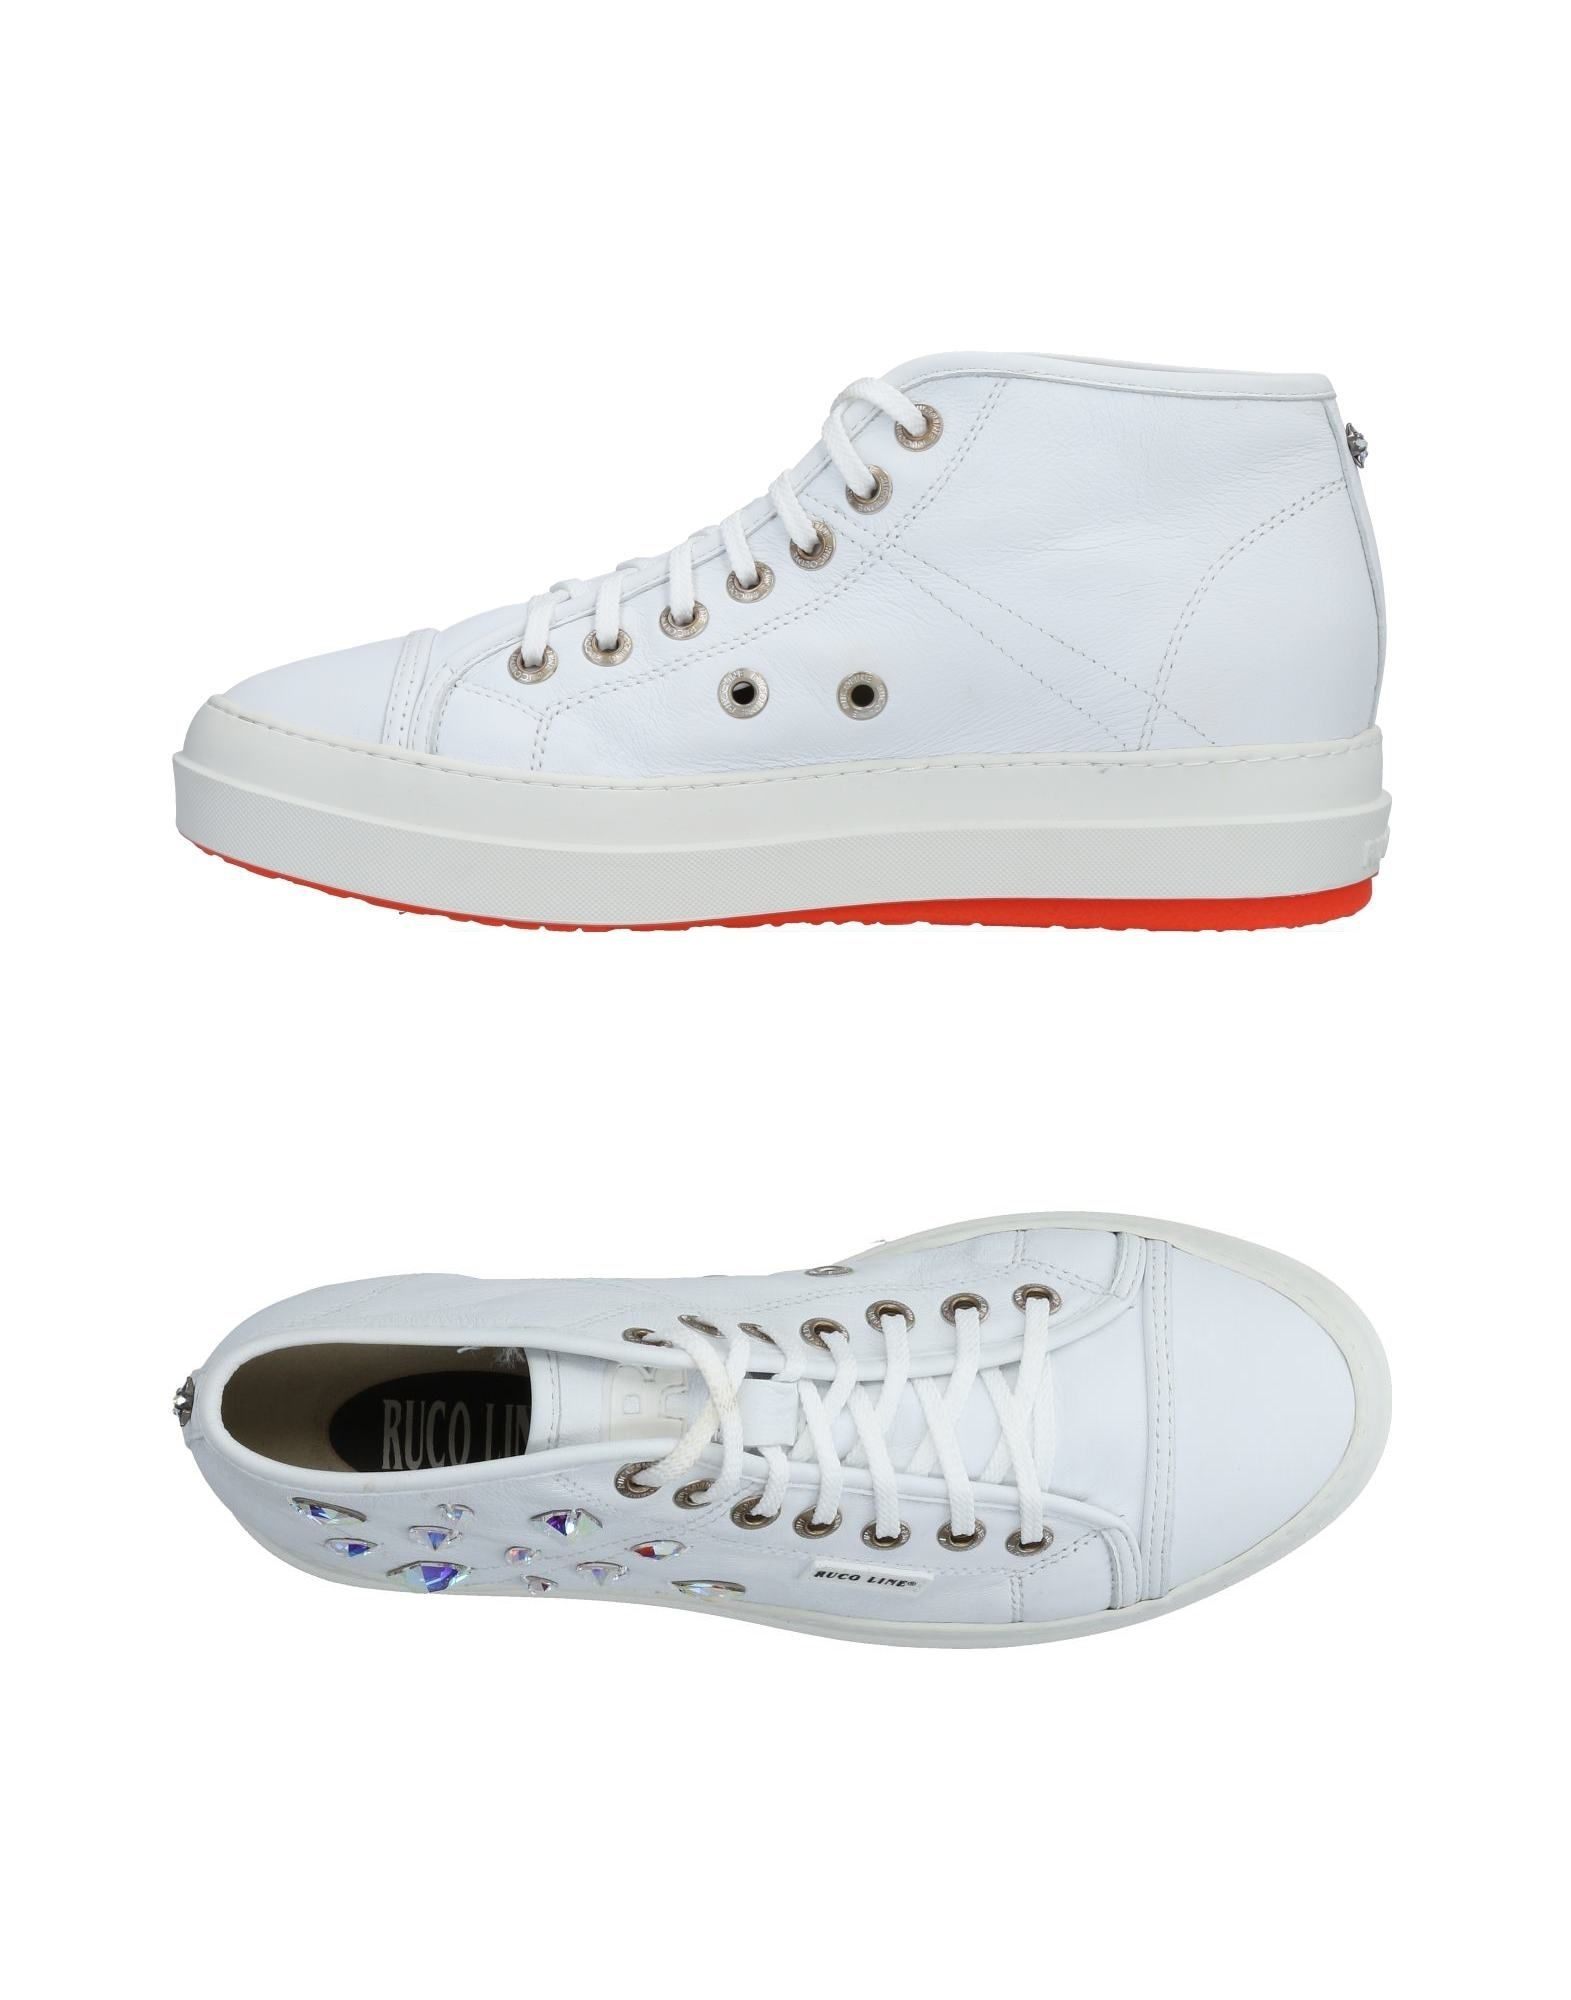 Baskets Ruco Line Femme - Baskets Ruco Line Blanc Chaussures casual sauvages